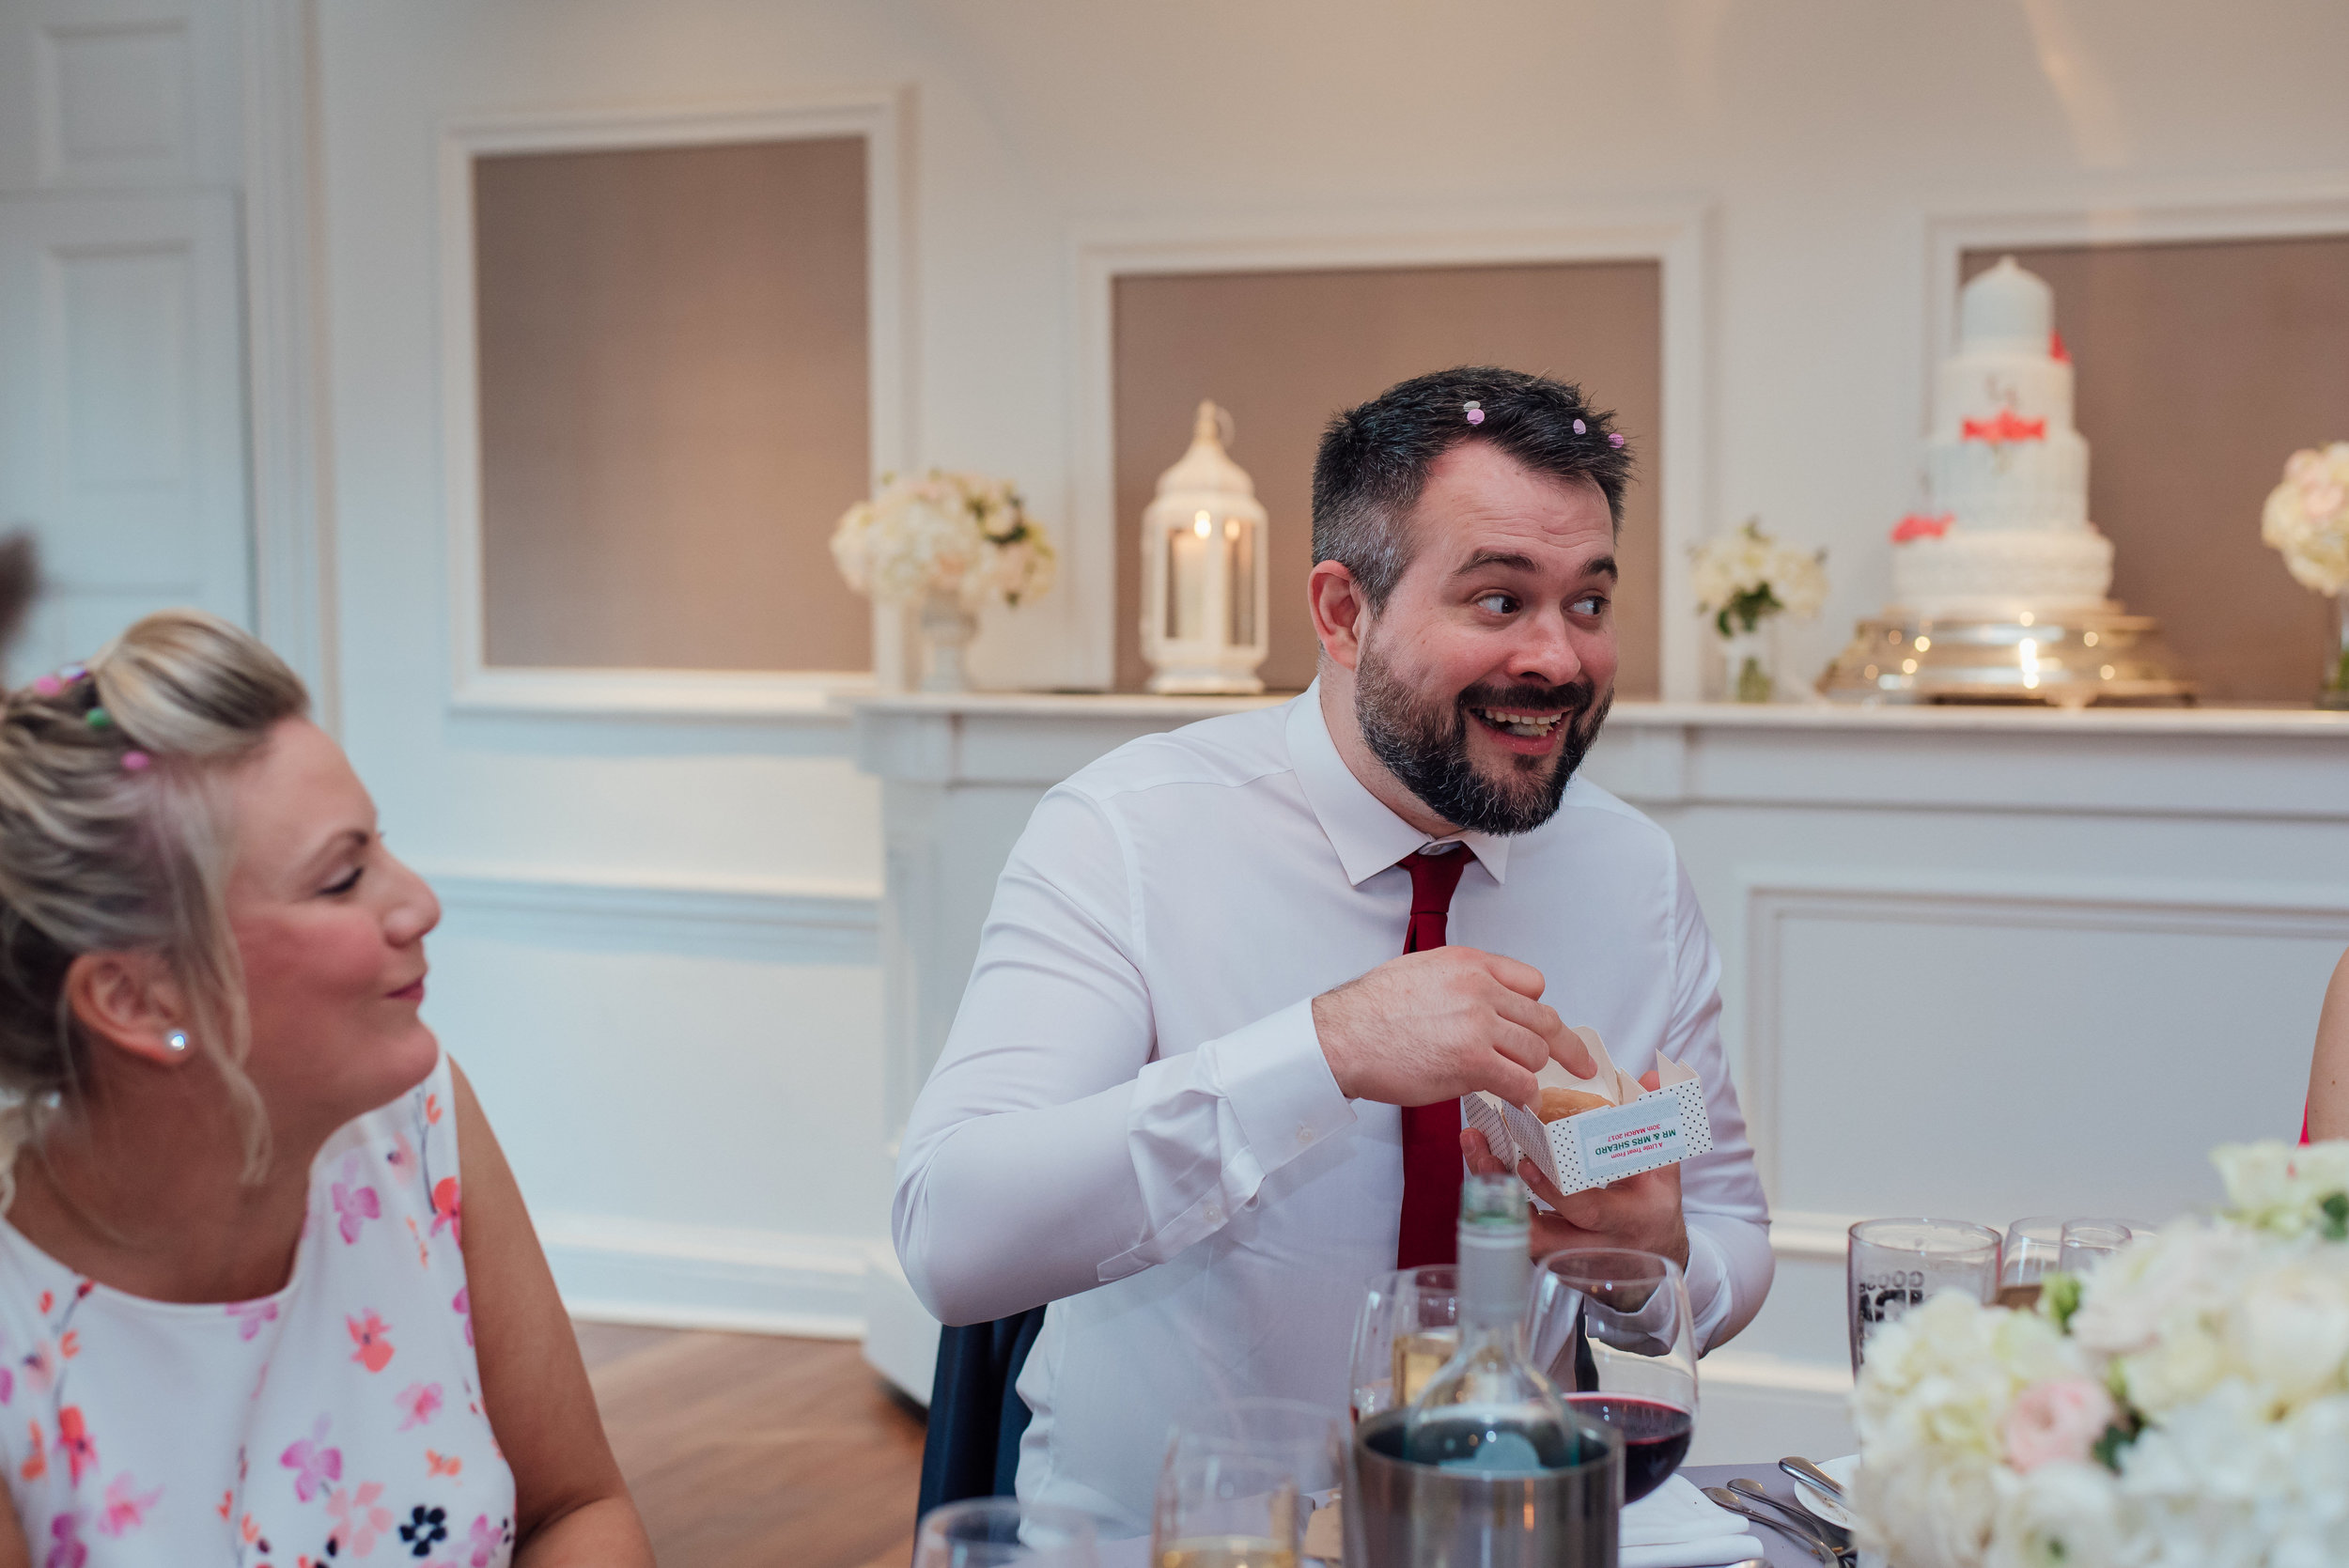 George in Rye Wedding - Amy James Photography - Wedding photographer Hampshire Surrey and Berkshire